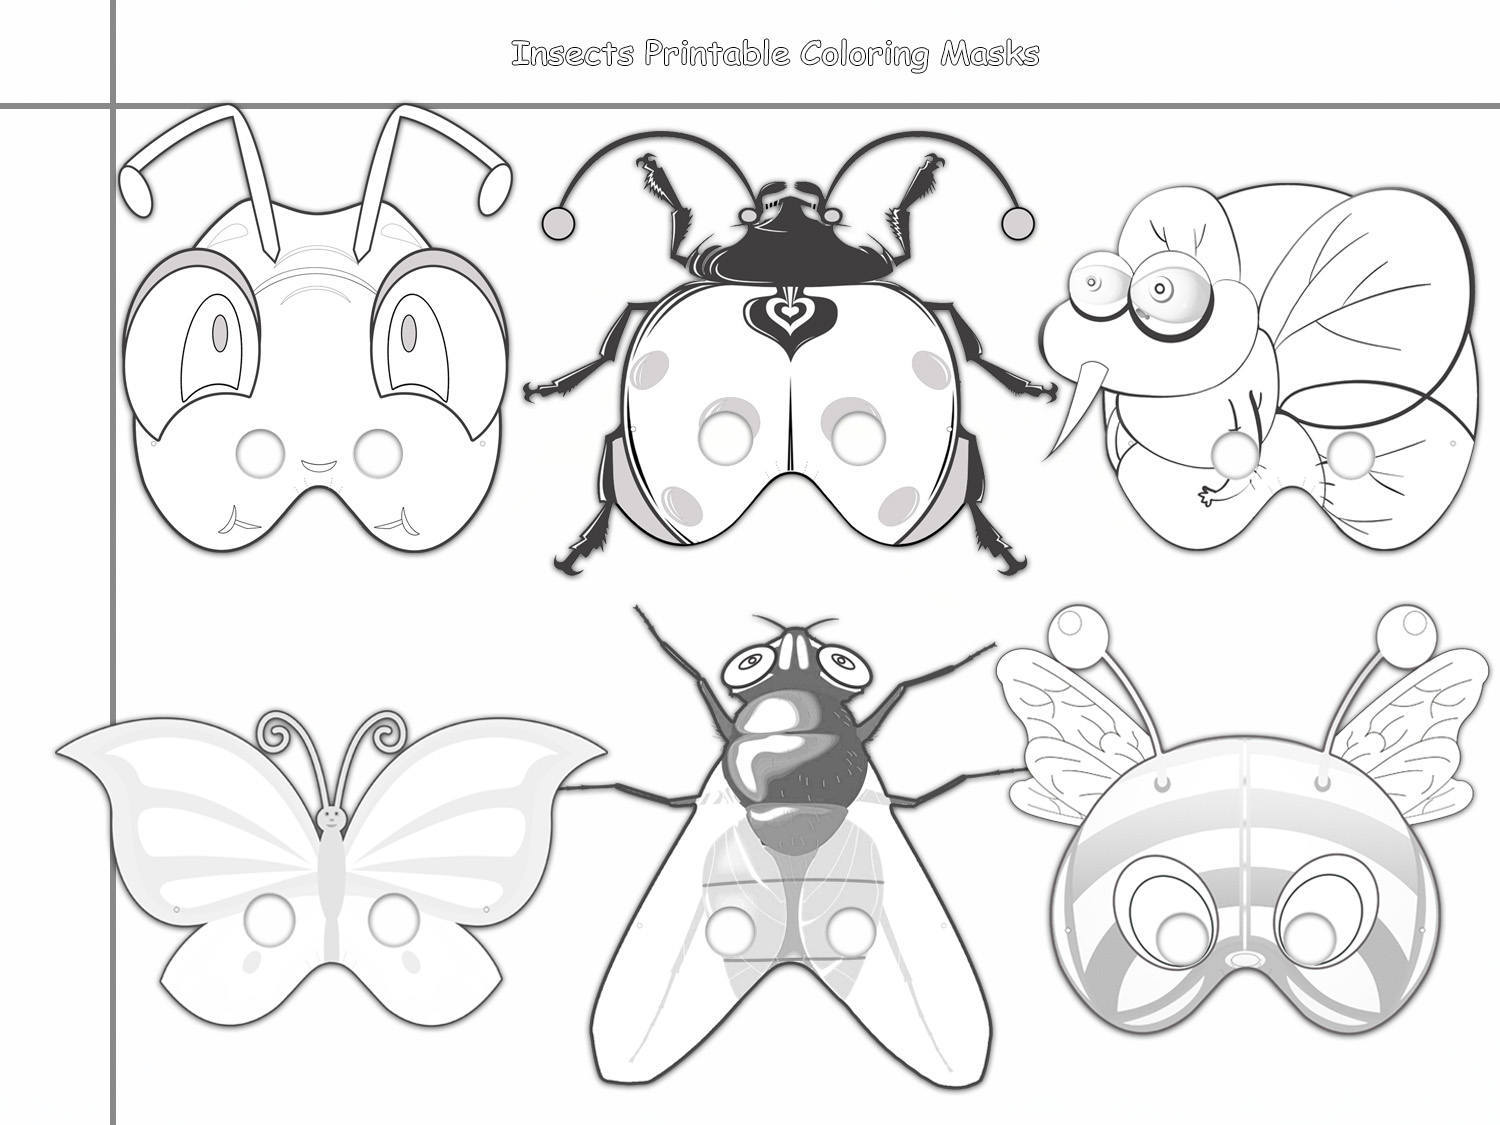 Insects Printable Coloring Masks, insect by